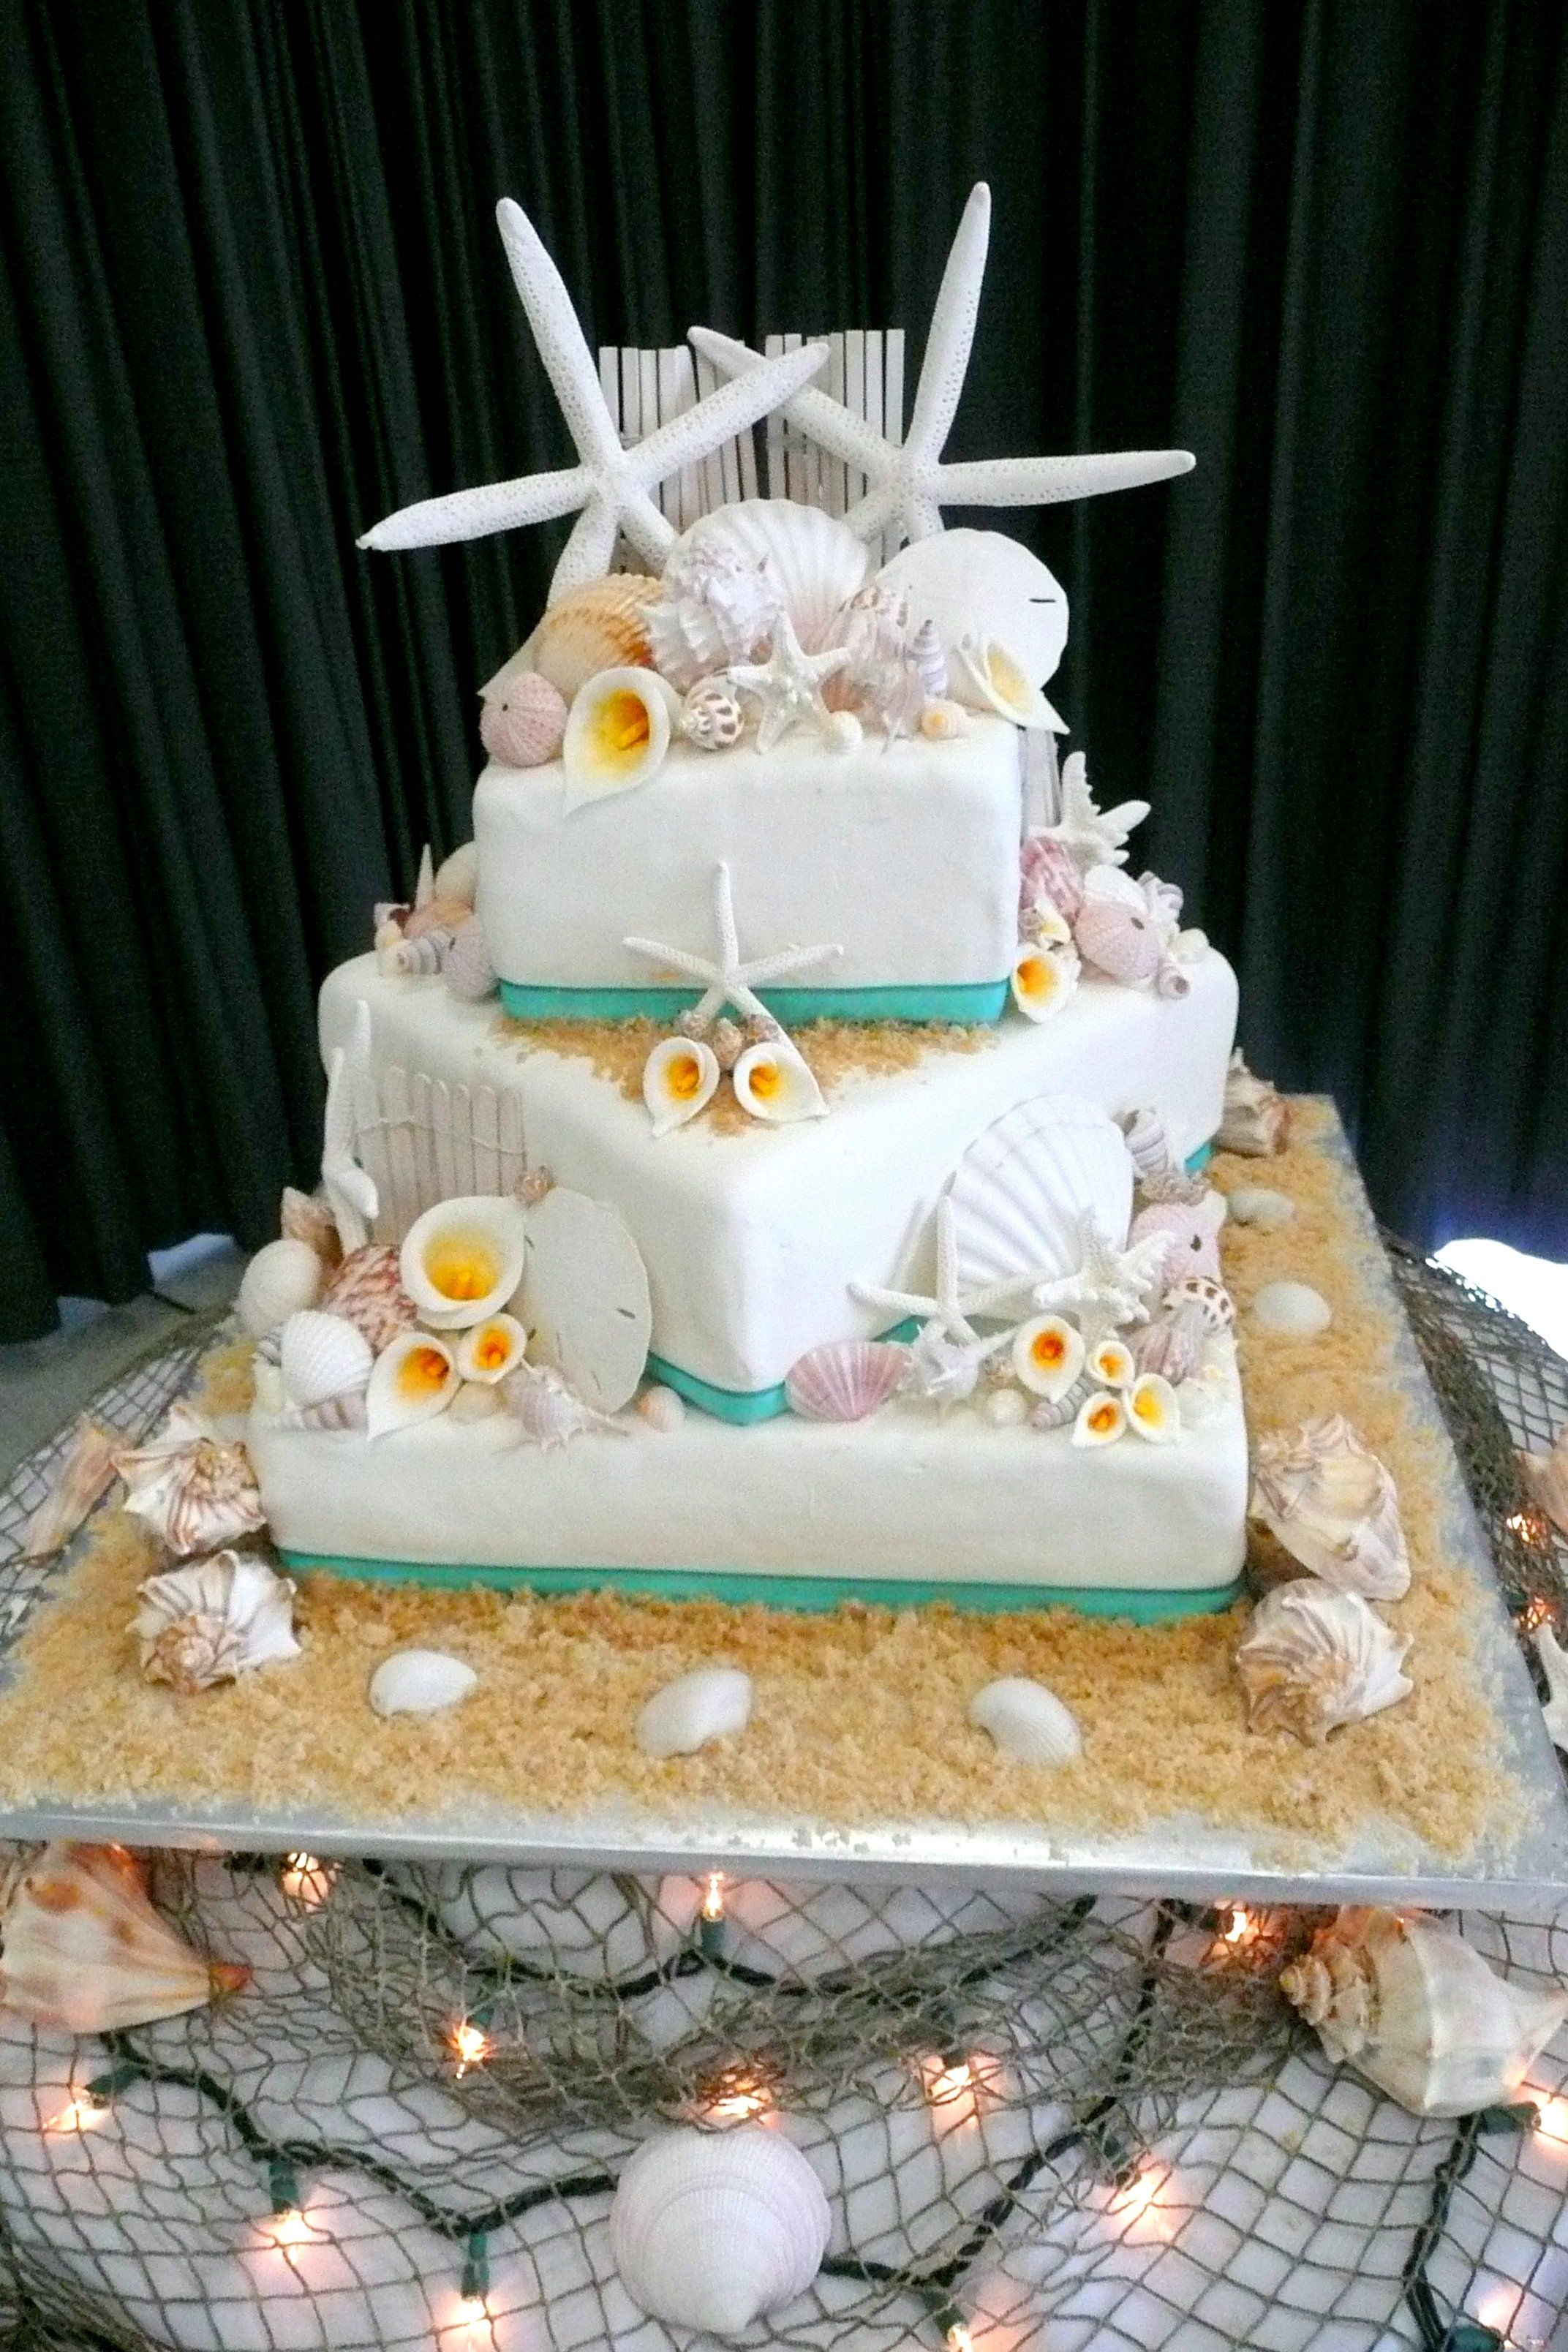 Beach Wedding Cake Like The Idea For The Cake Table With The